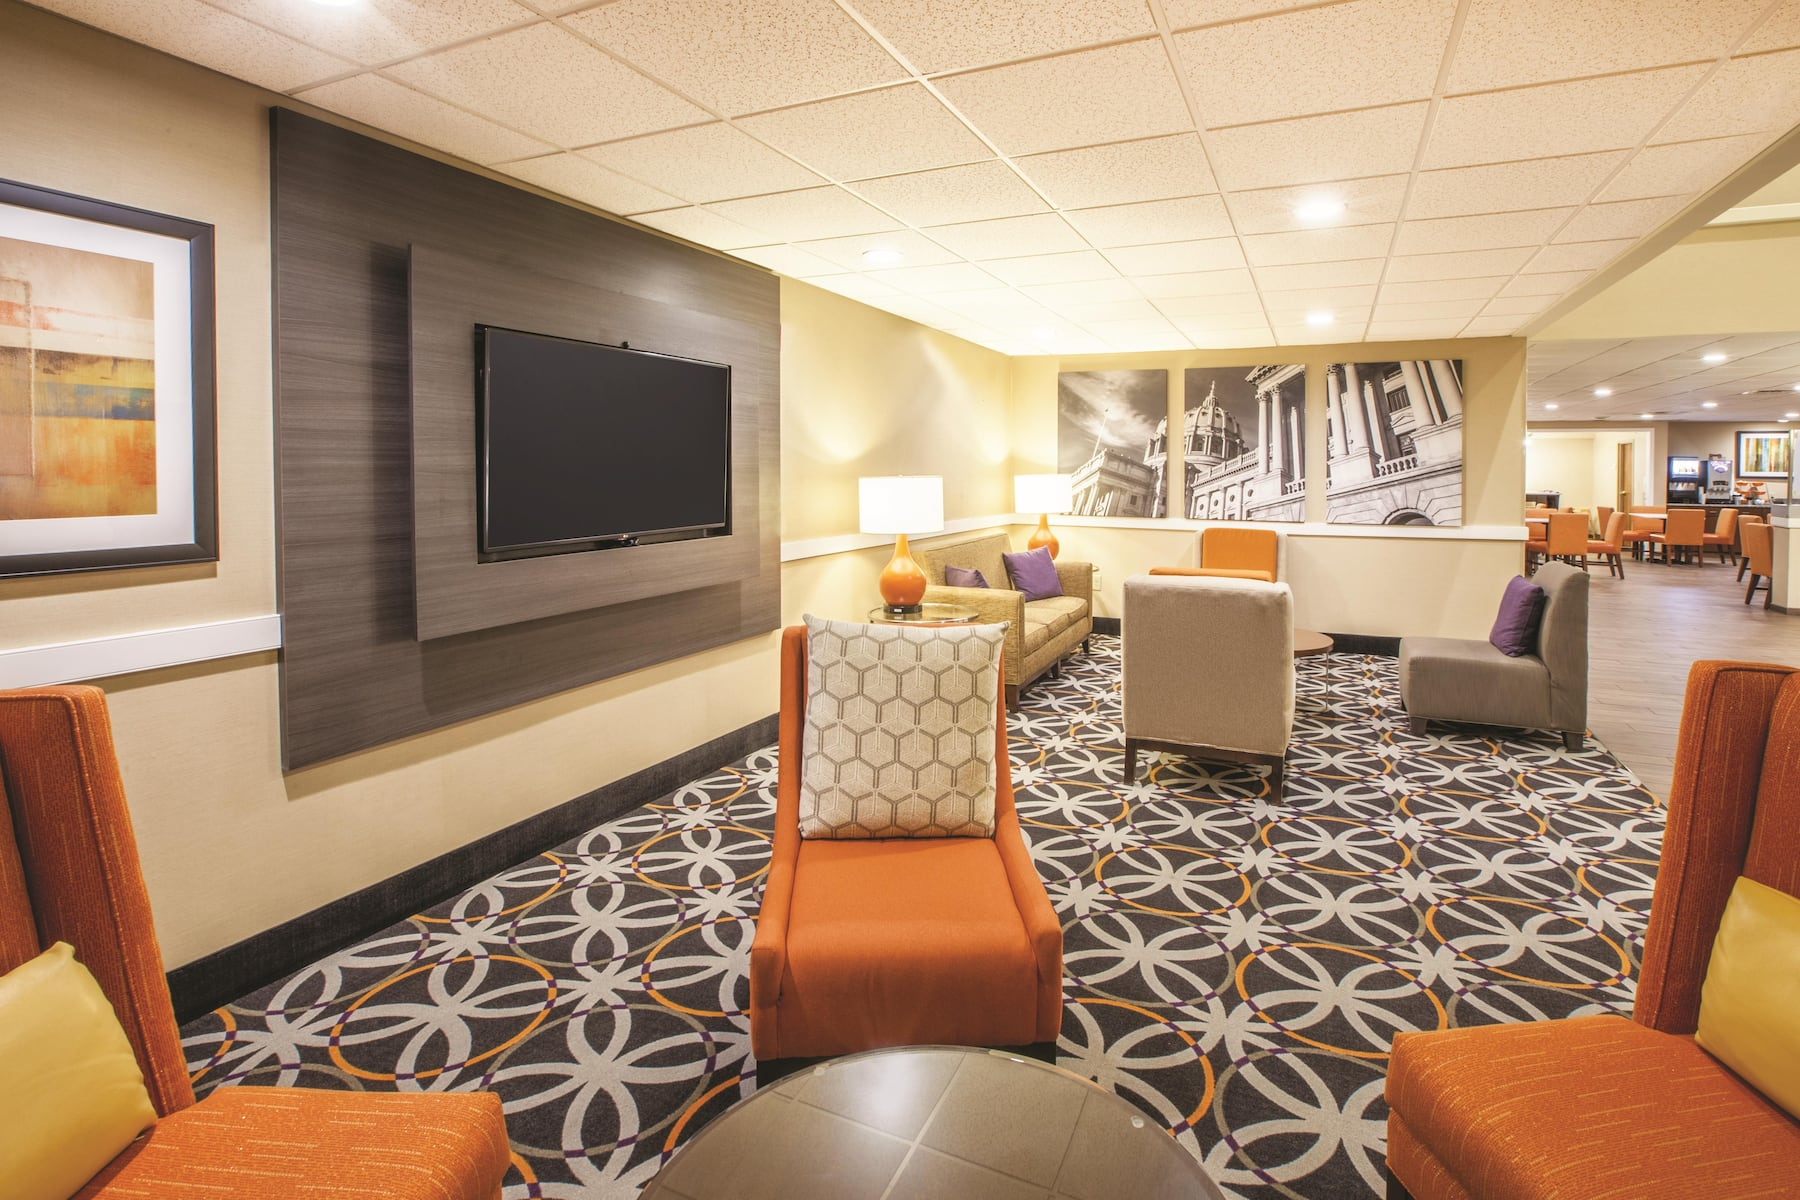 La Quinta Inn Amp Suites By Wyndham Mechanicsburg